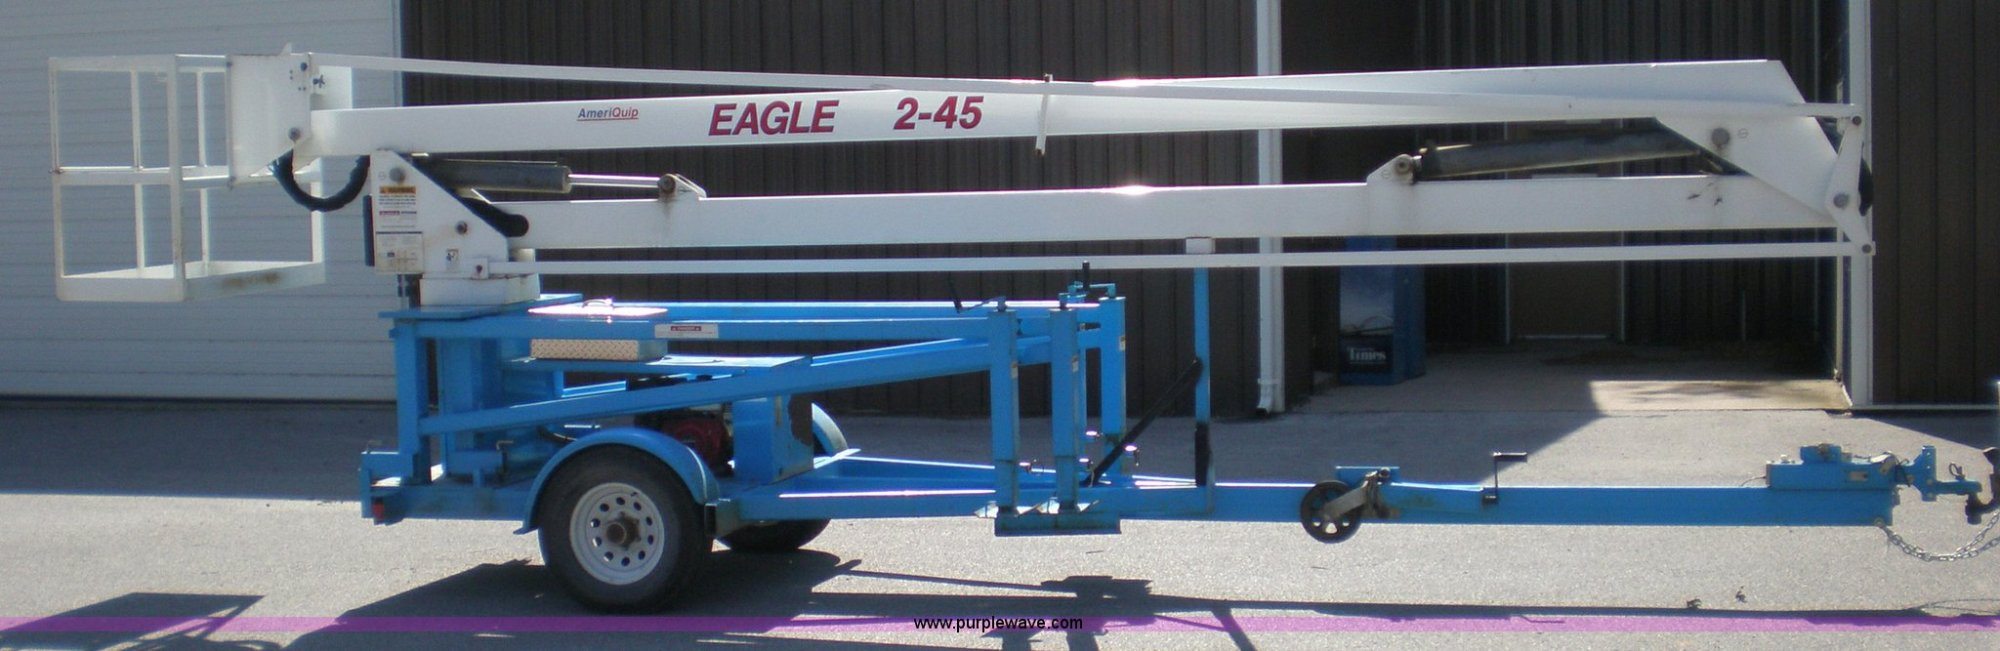 hight resolution of 1997 ameriquip eagle 2 45 boom lift item 1460 sold octo eagle 2 45 lift wiring diagram